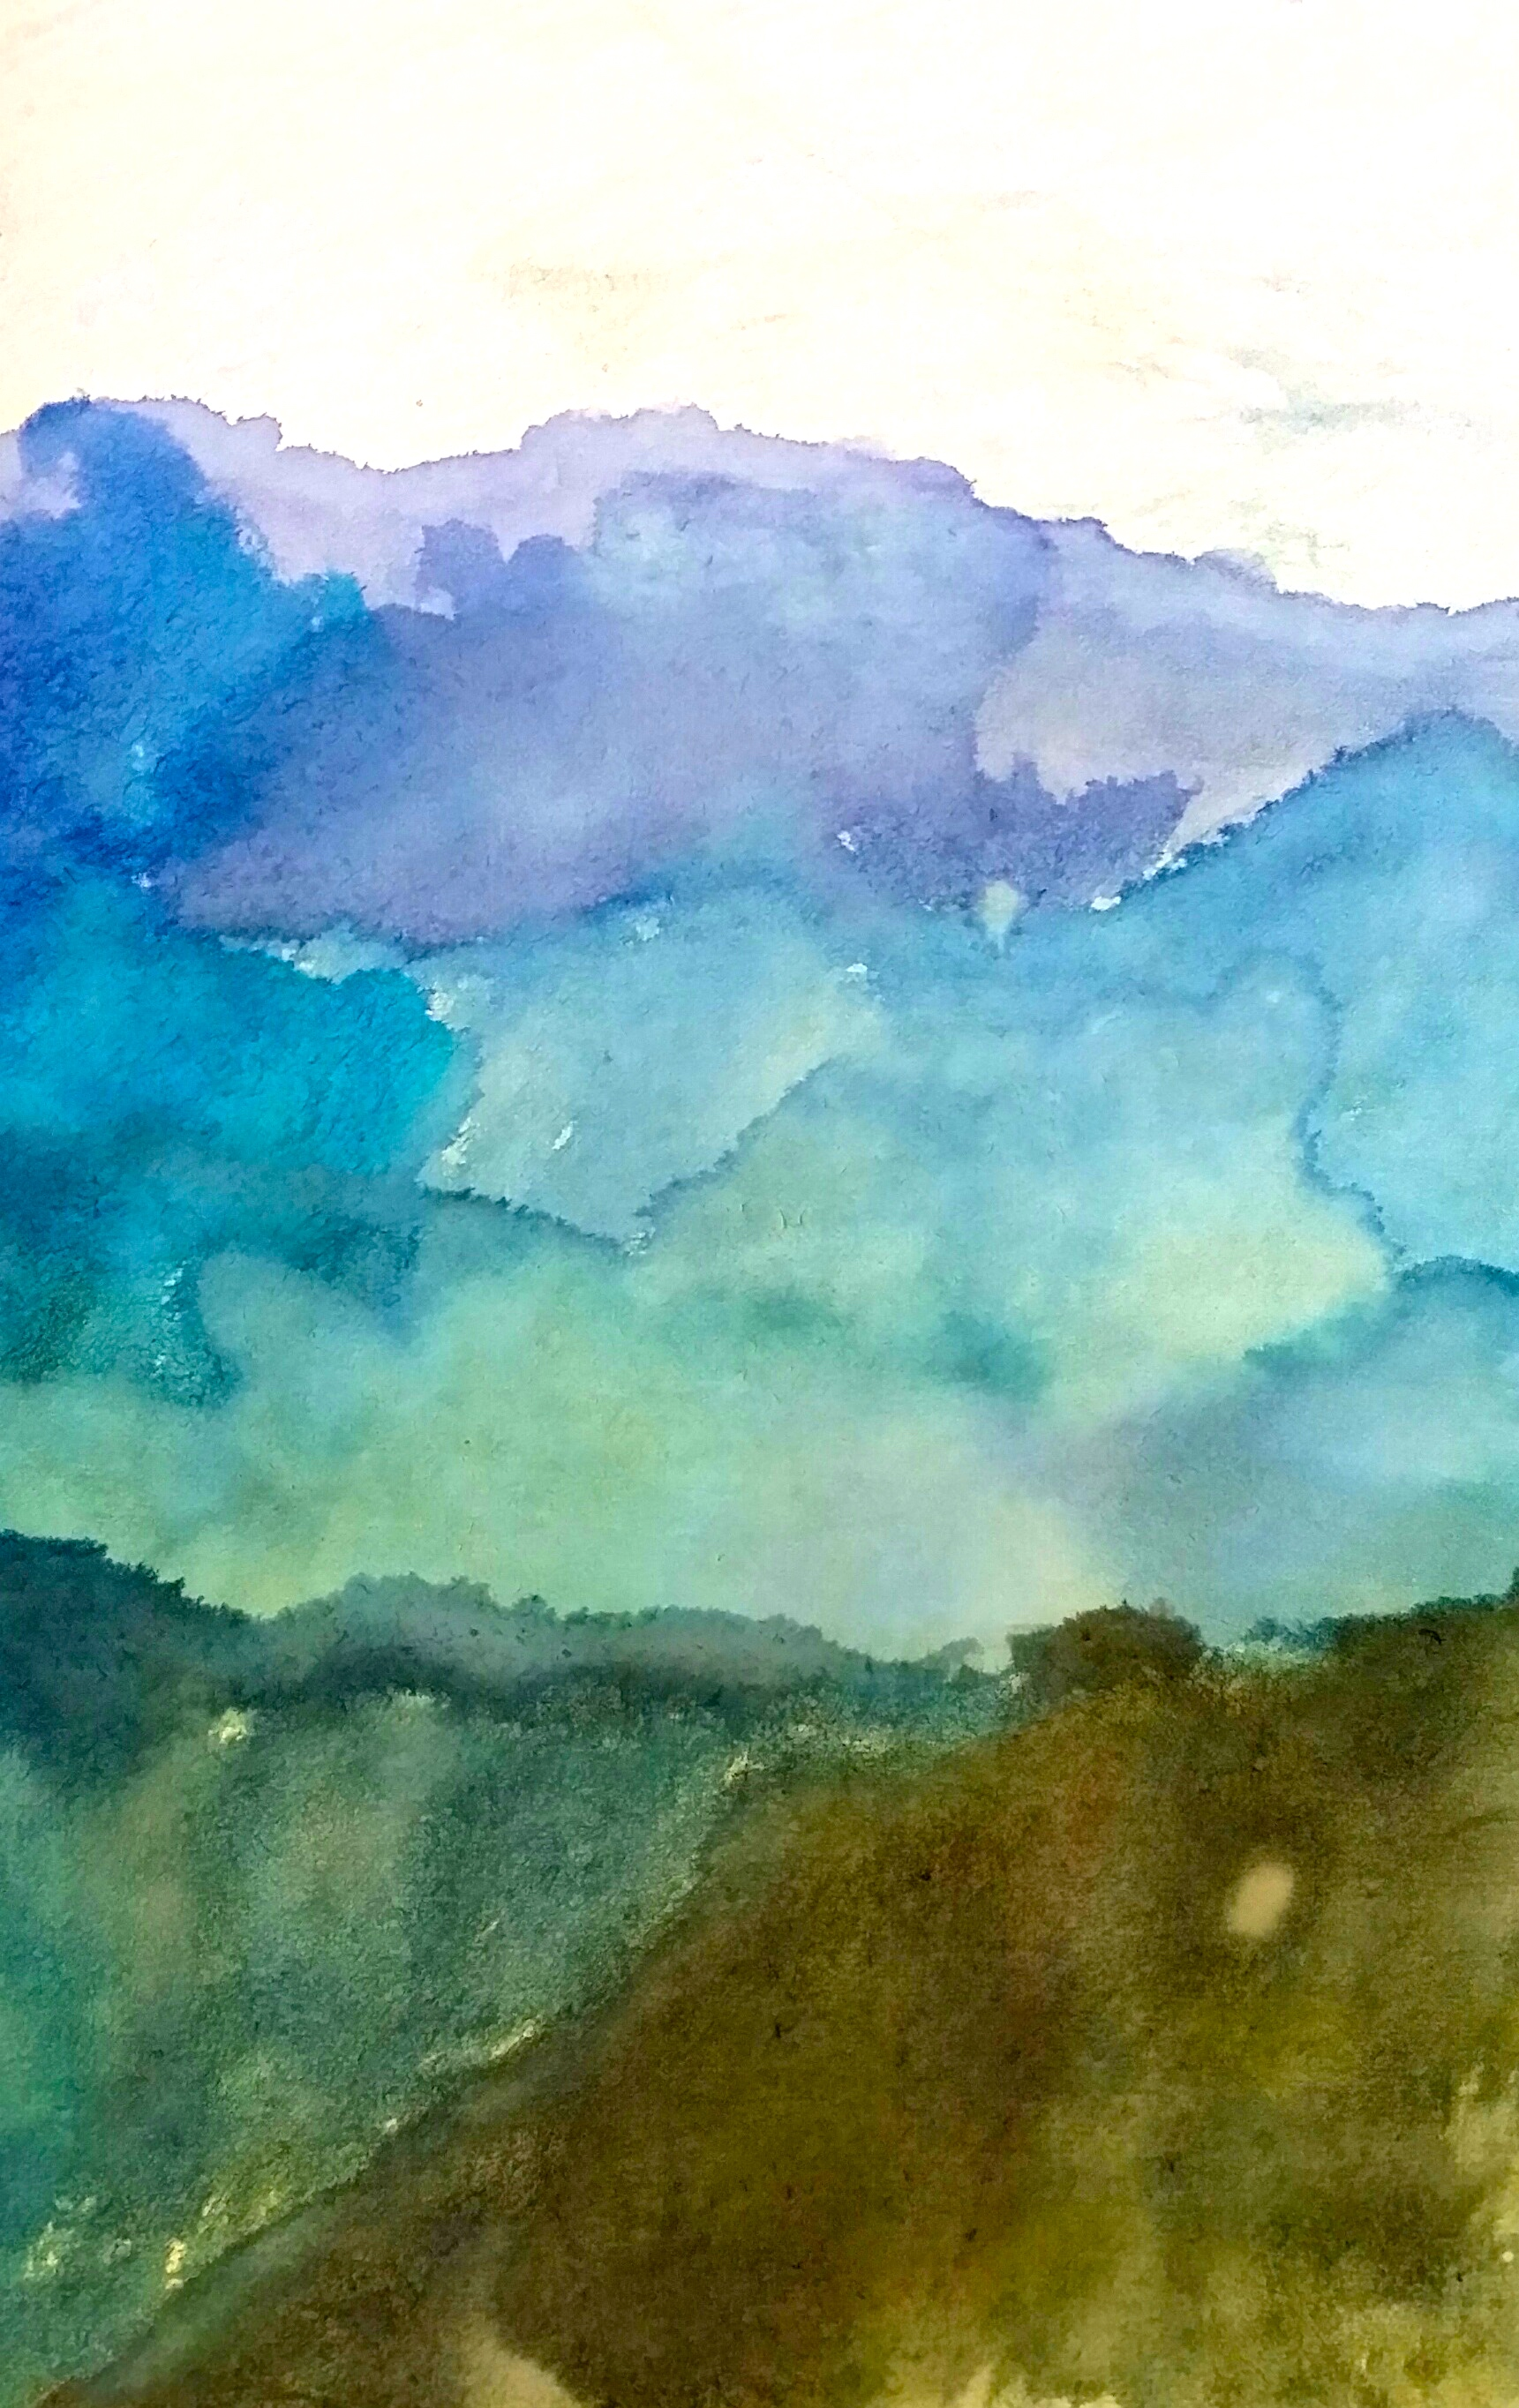 Lanscape watercolor by Max age 10